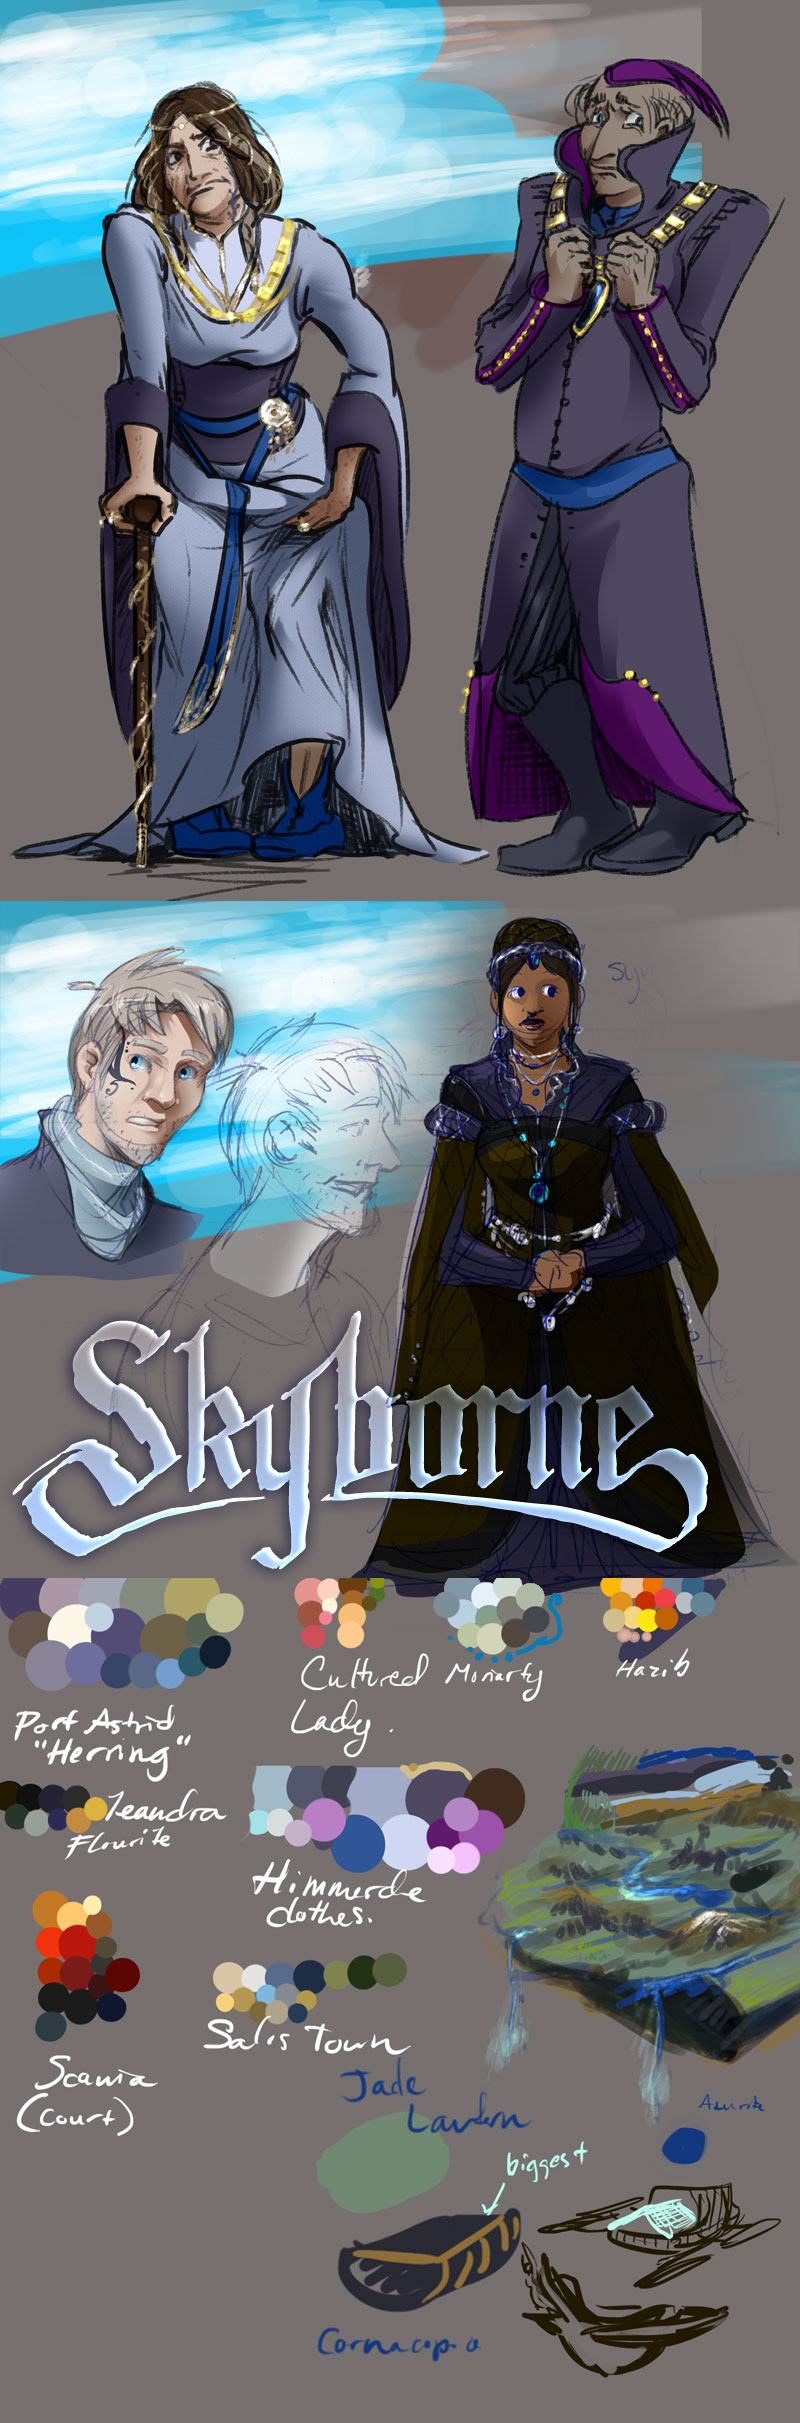 Skyborne color sketches/ concepting by Plotholetsi